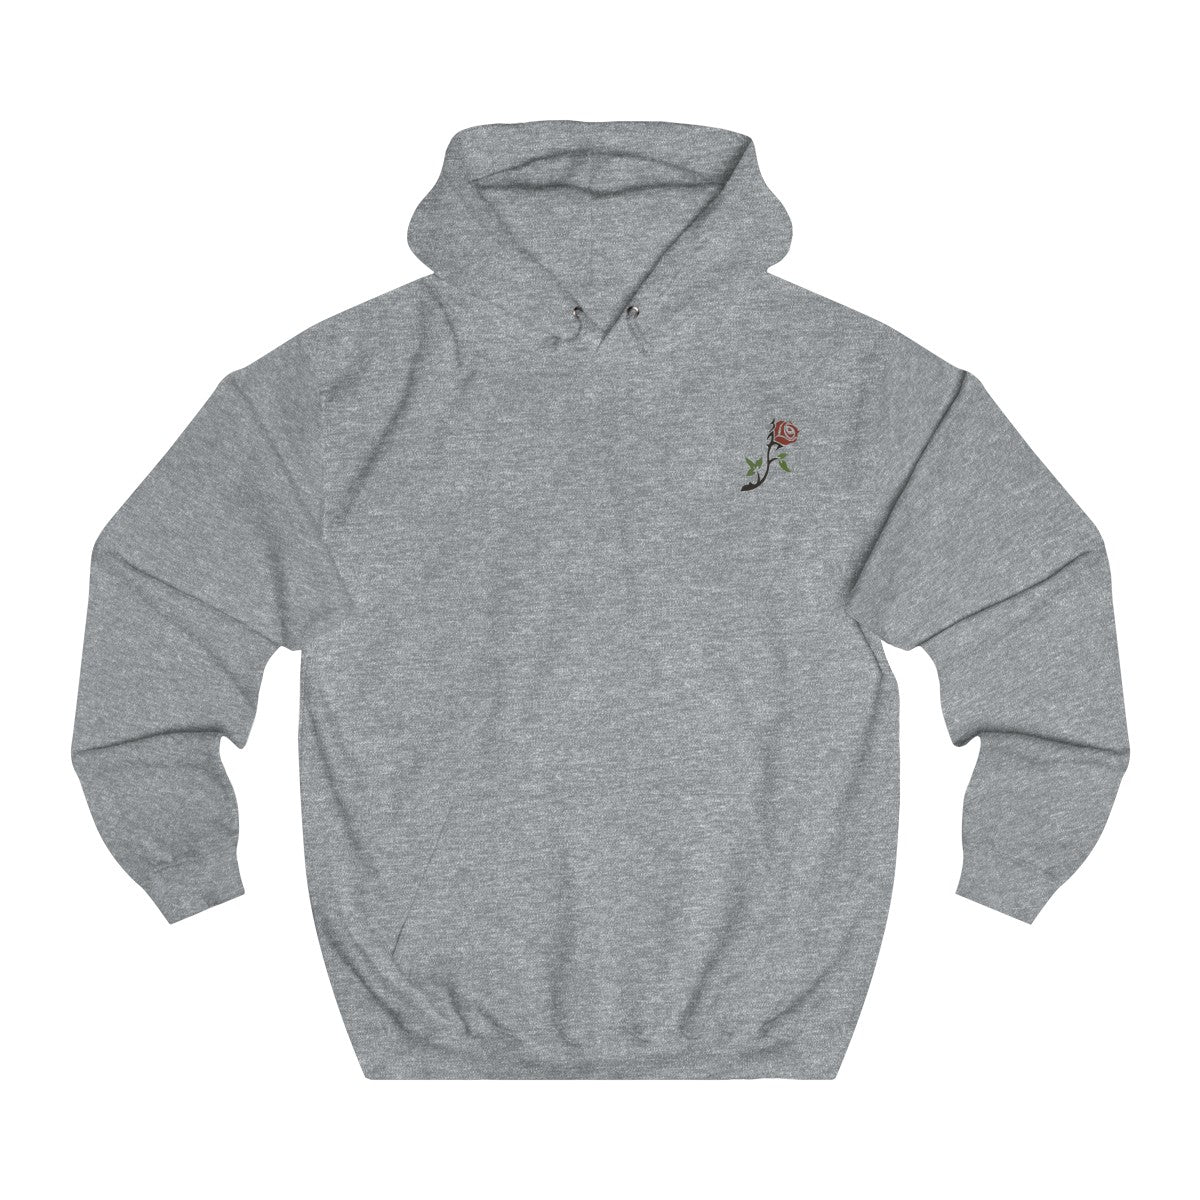 Unisex College Hoodie- with rose on chest & design on back - Wolf Kanactus